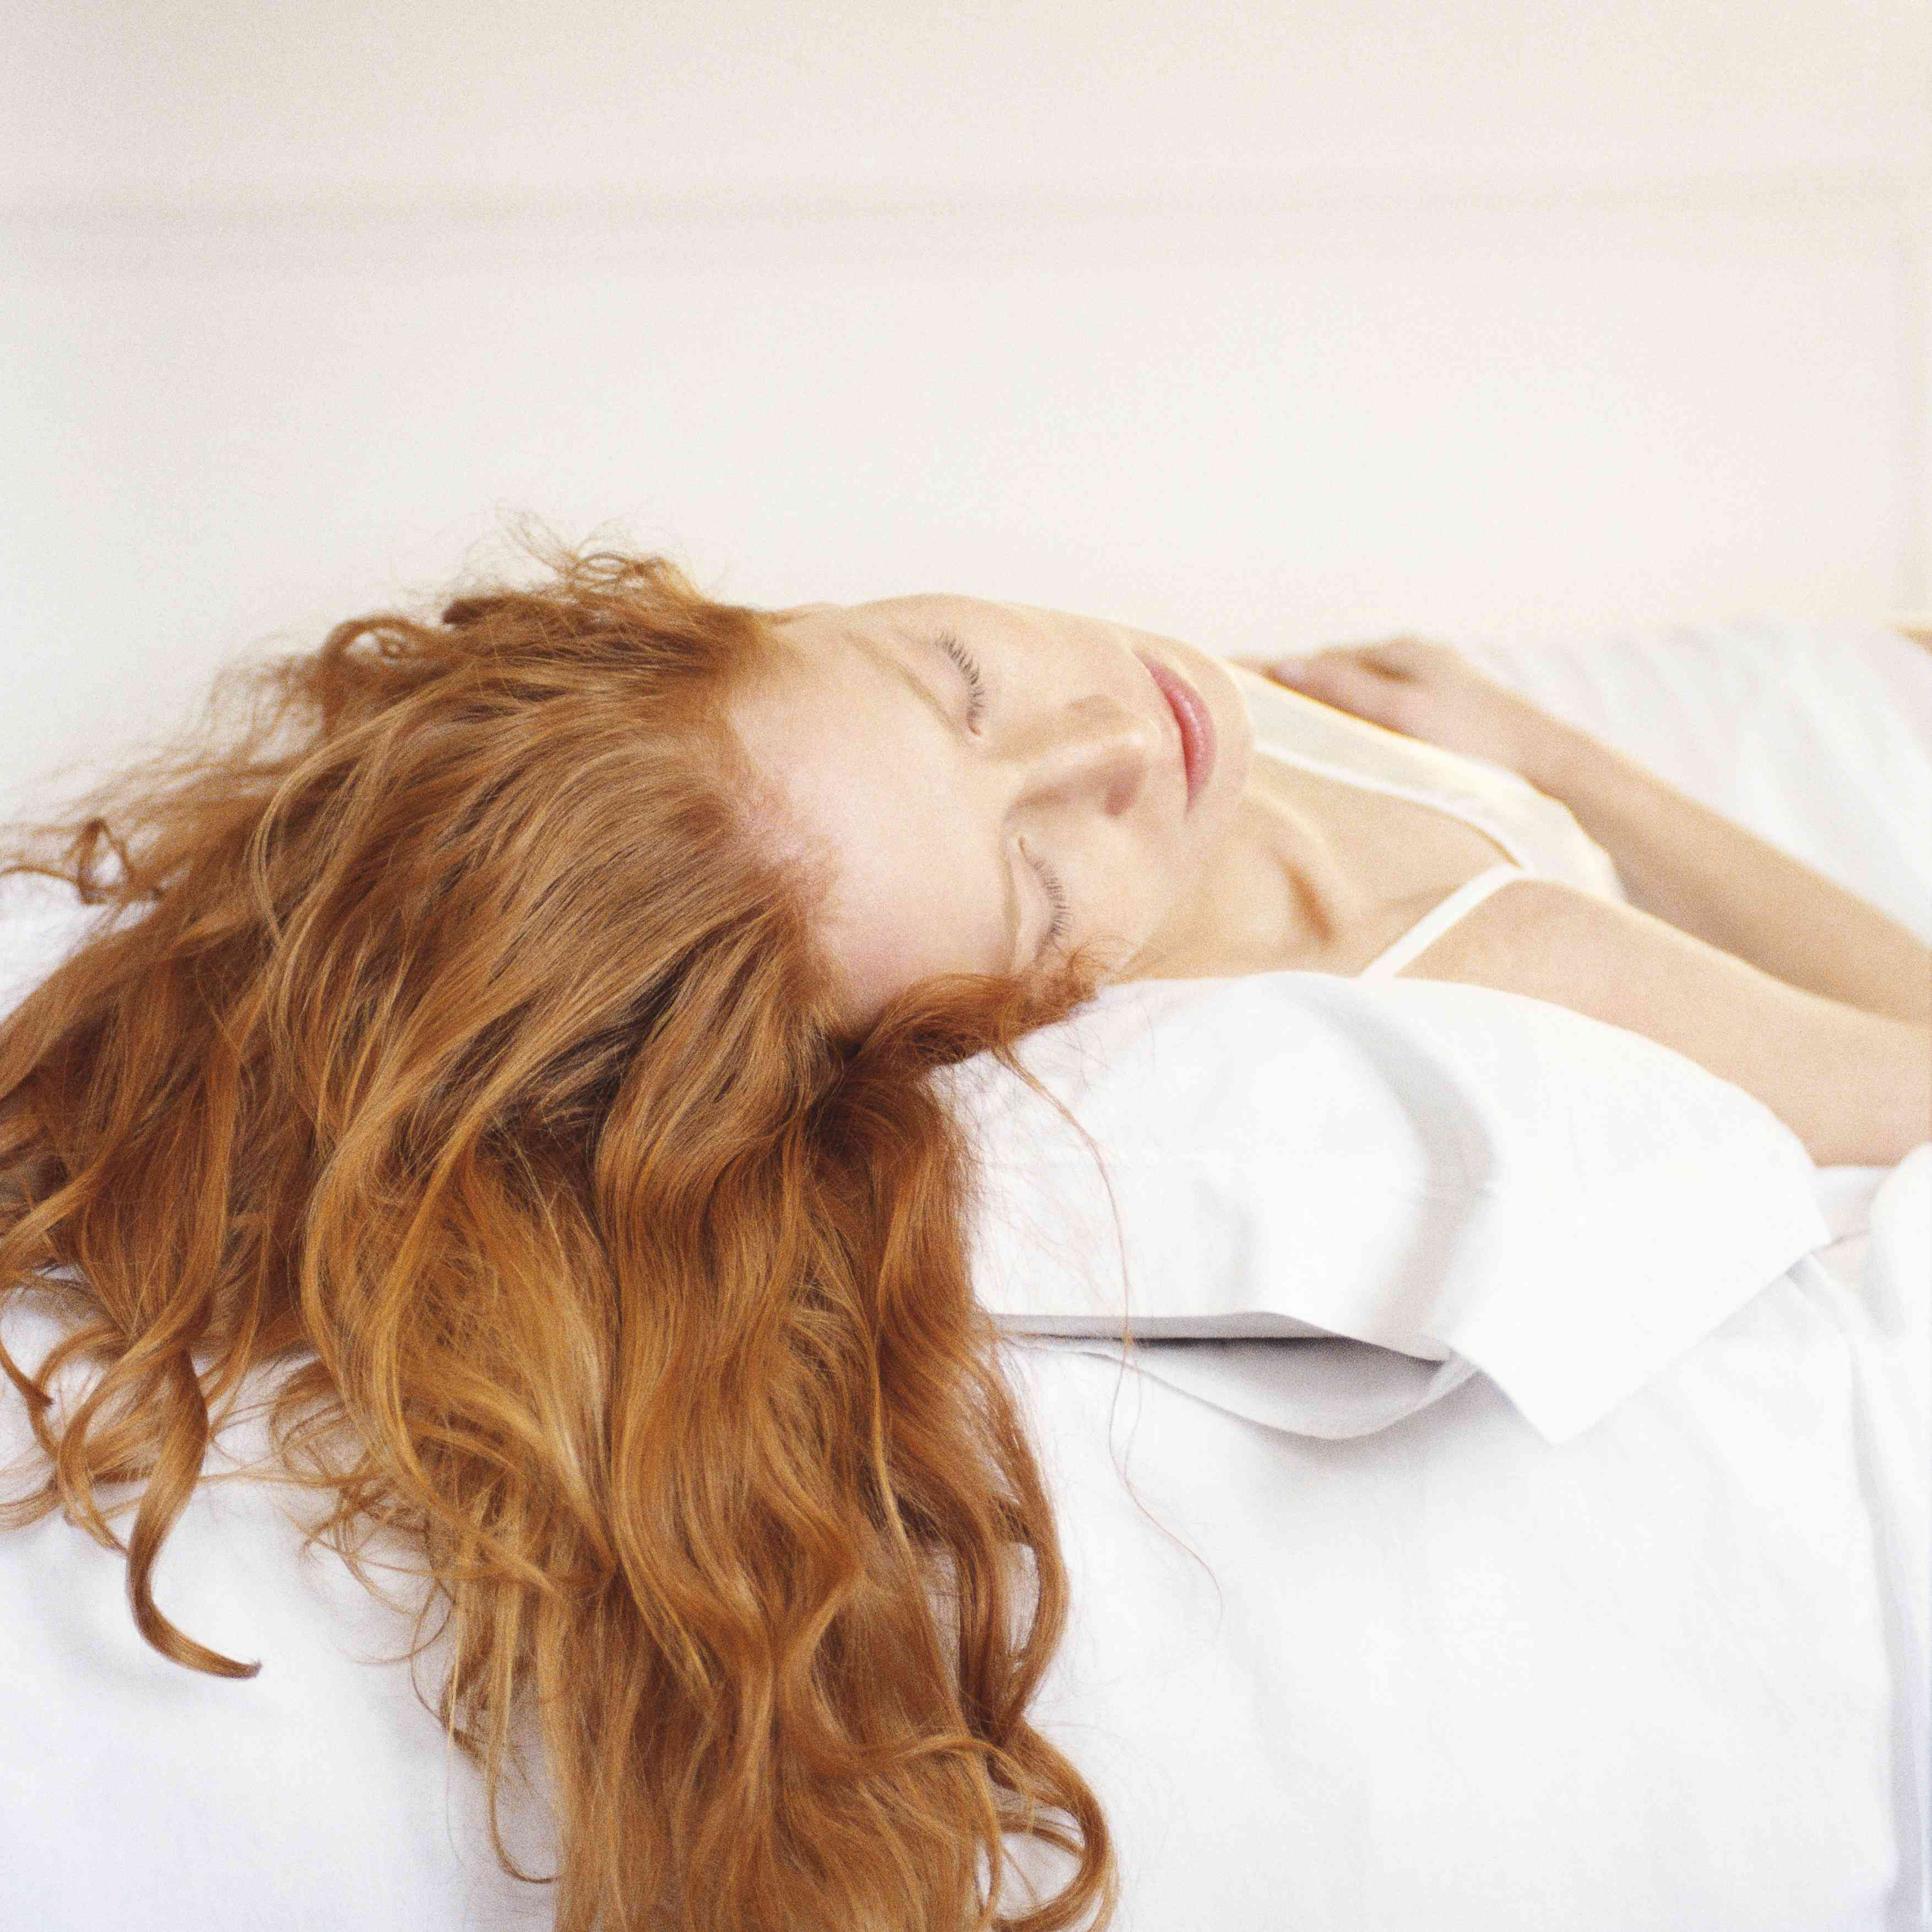 redheaded woman lying on a bed